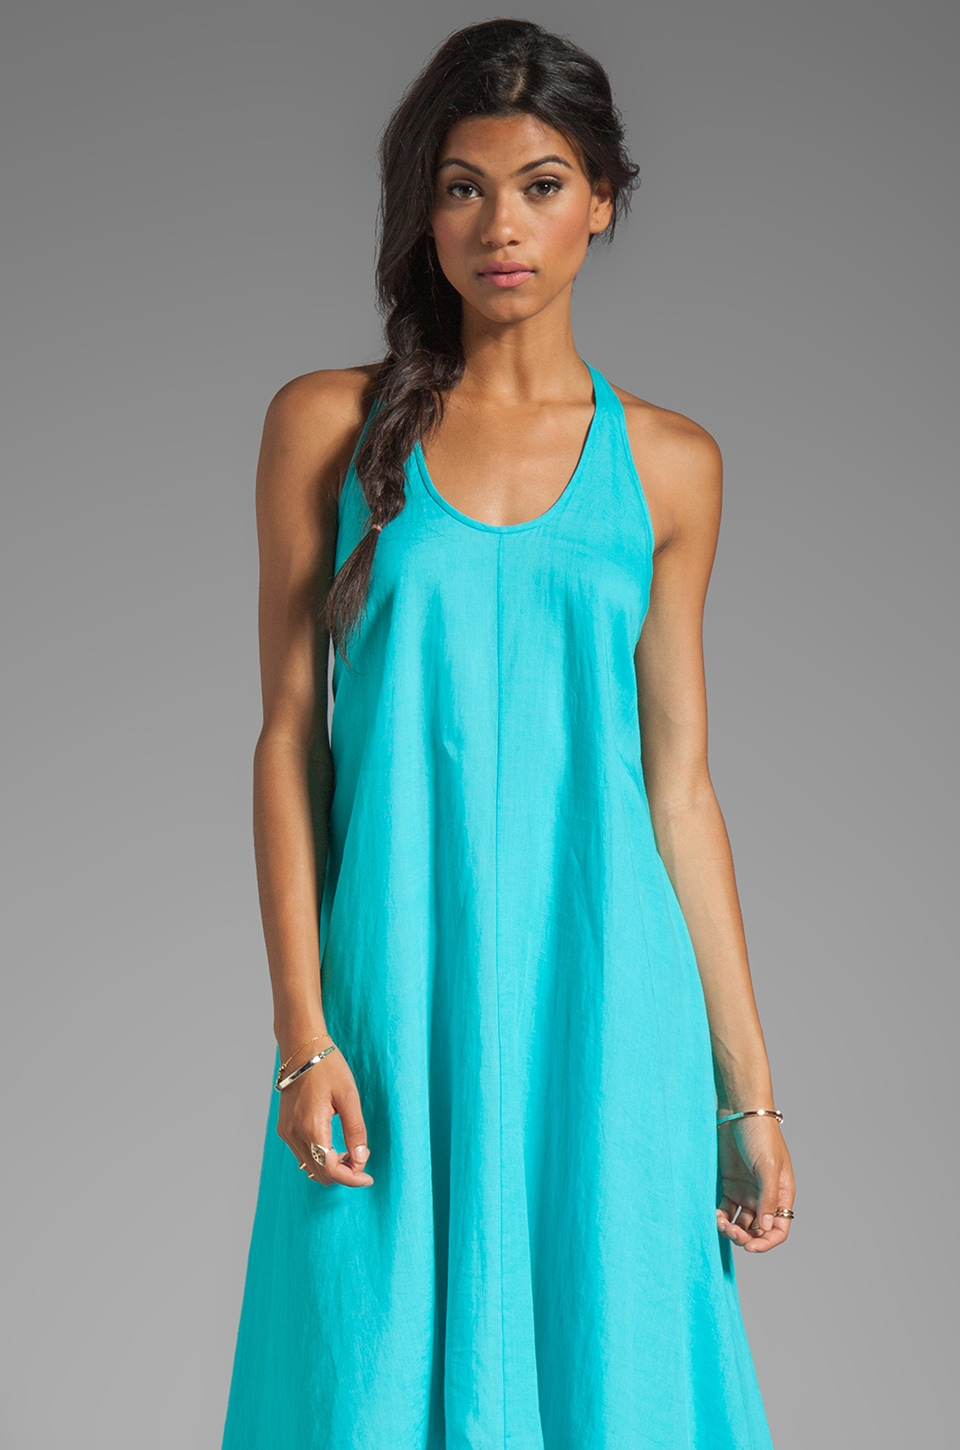 Diane von Furstenberg Carsandra Dress in Blue Lagoon